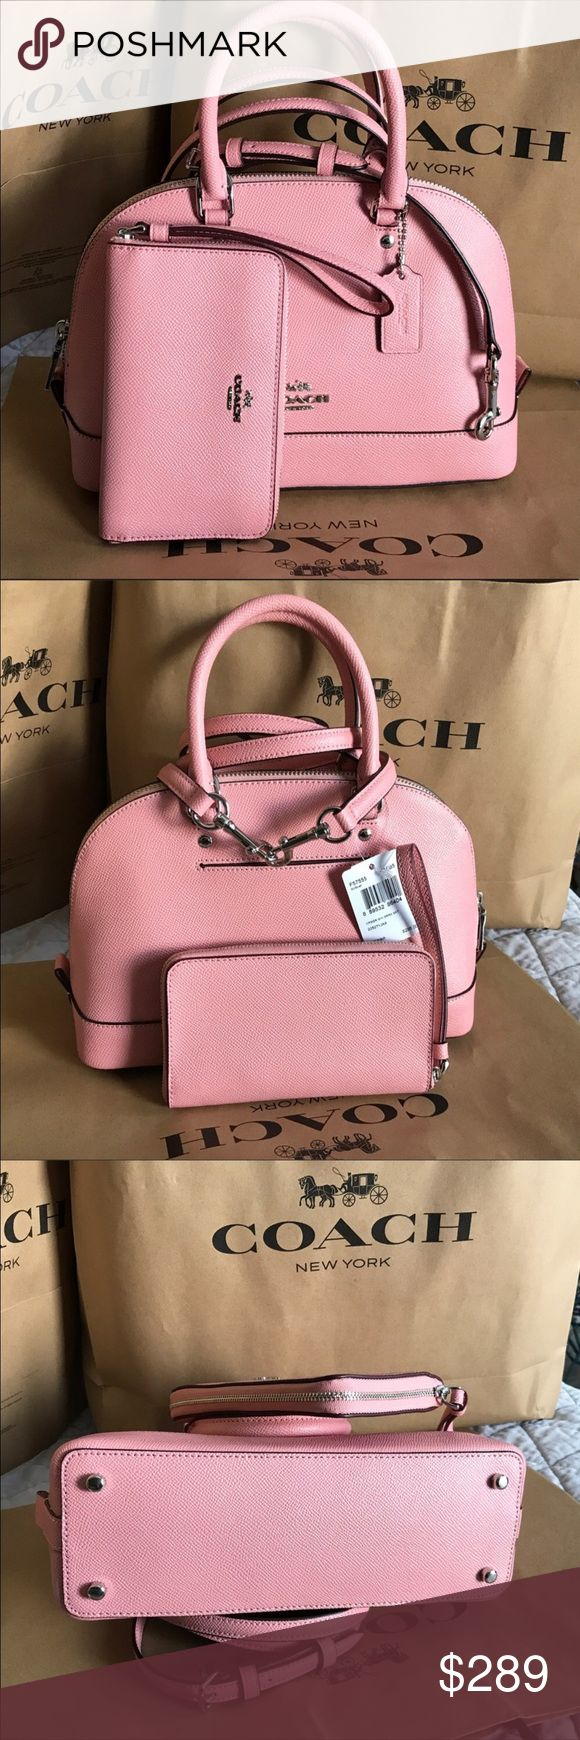 Coach Set 100% Authentic Coach Purse Crossbody and Wallet, both brand new!.color Blush/Pink Coach Bags Crossbody Bags